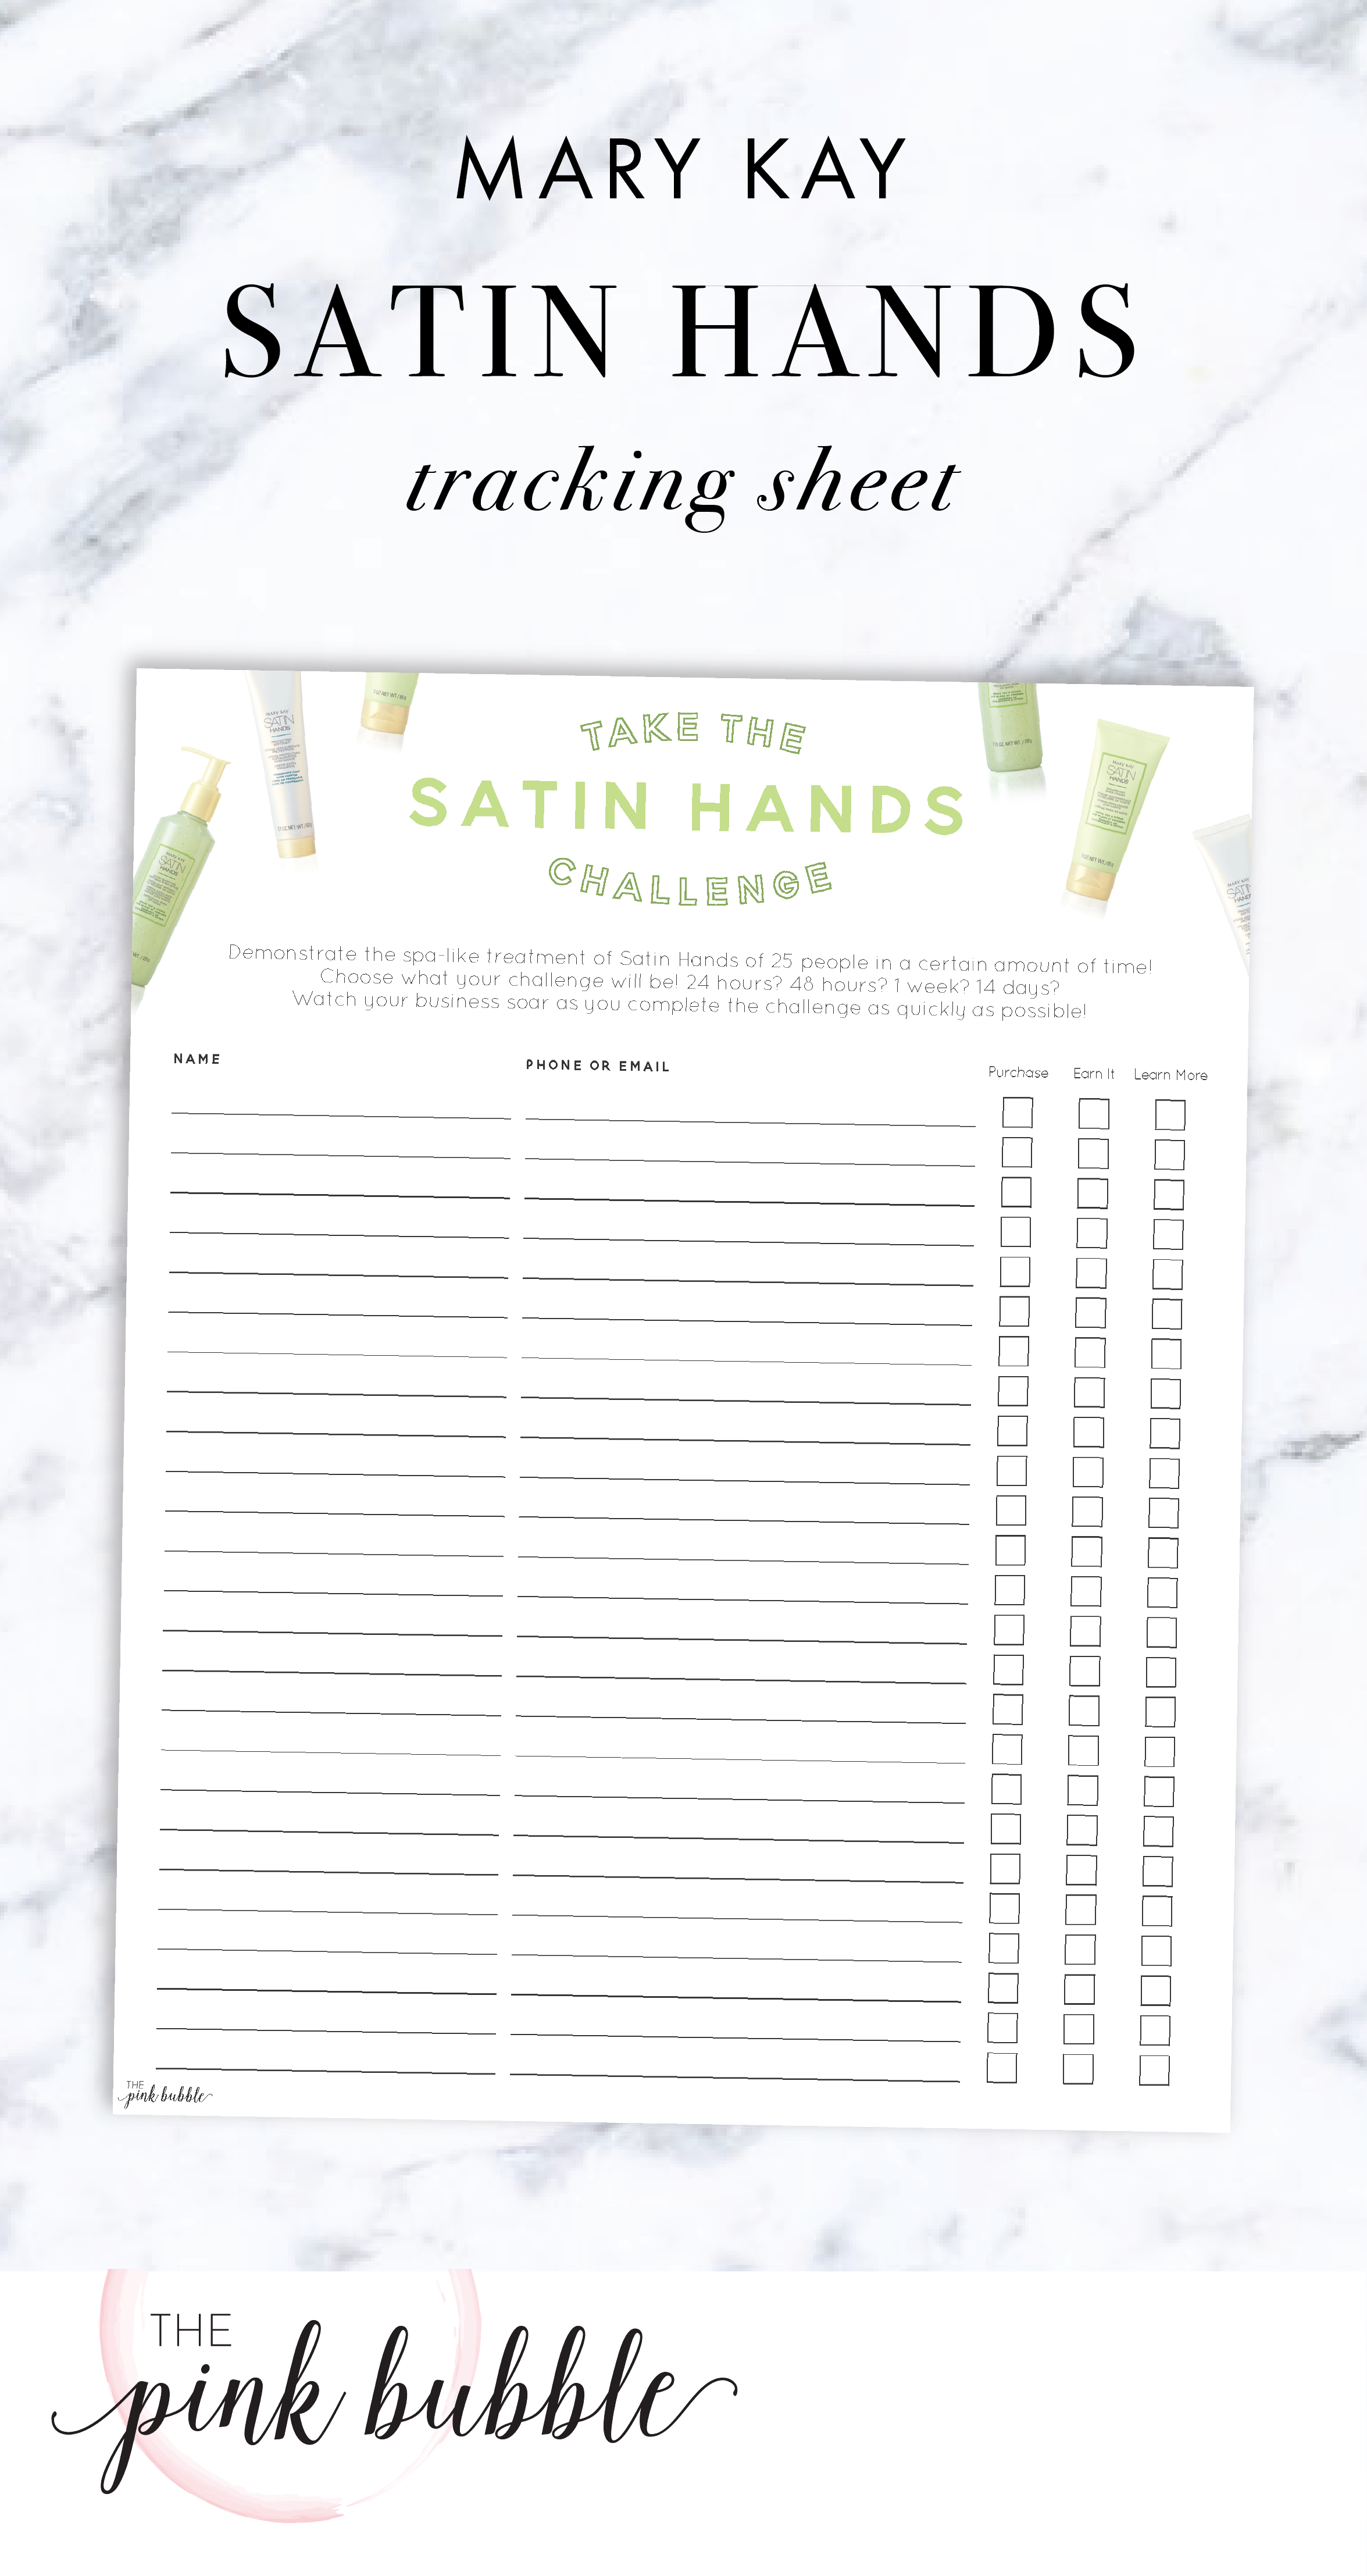 Mary Kay Satin Hands Challenge Tracking Sheet! Find it